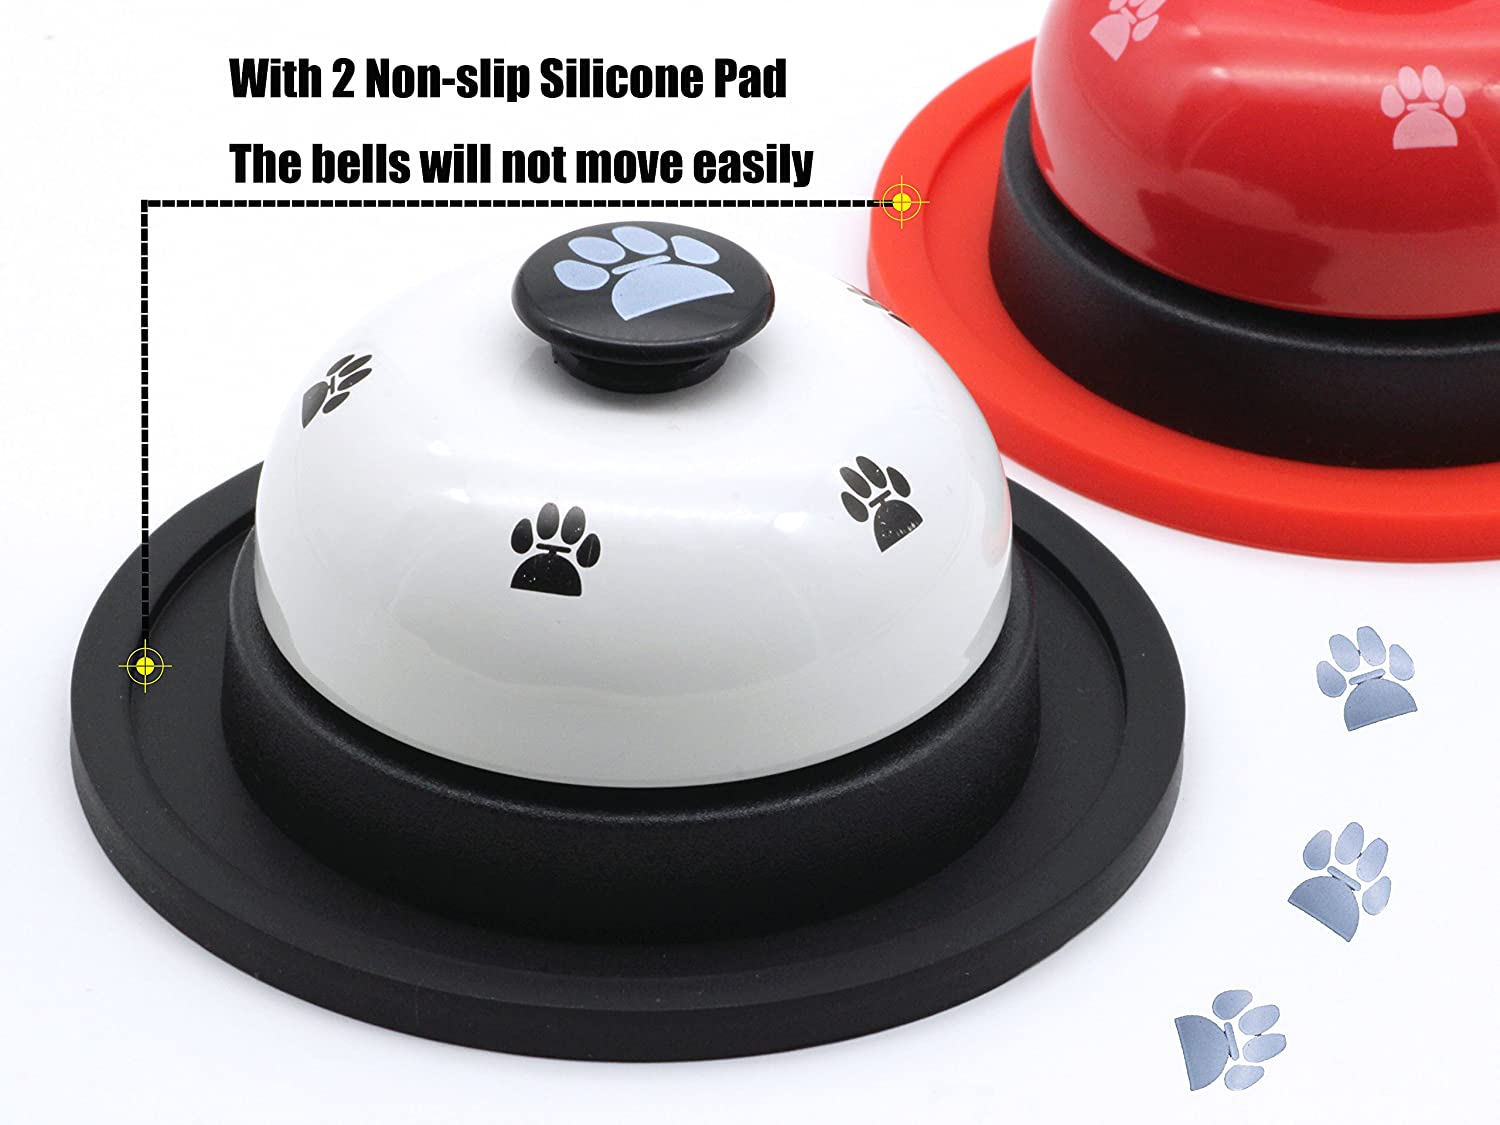 HOSANA Pet Training Bells Set of 2 with 2 Non-Slip Silicone Pad Dog Footprints Bells for Potty Training and Communication Device